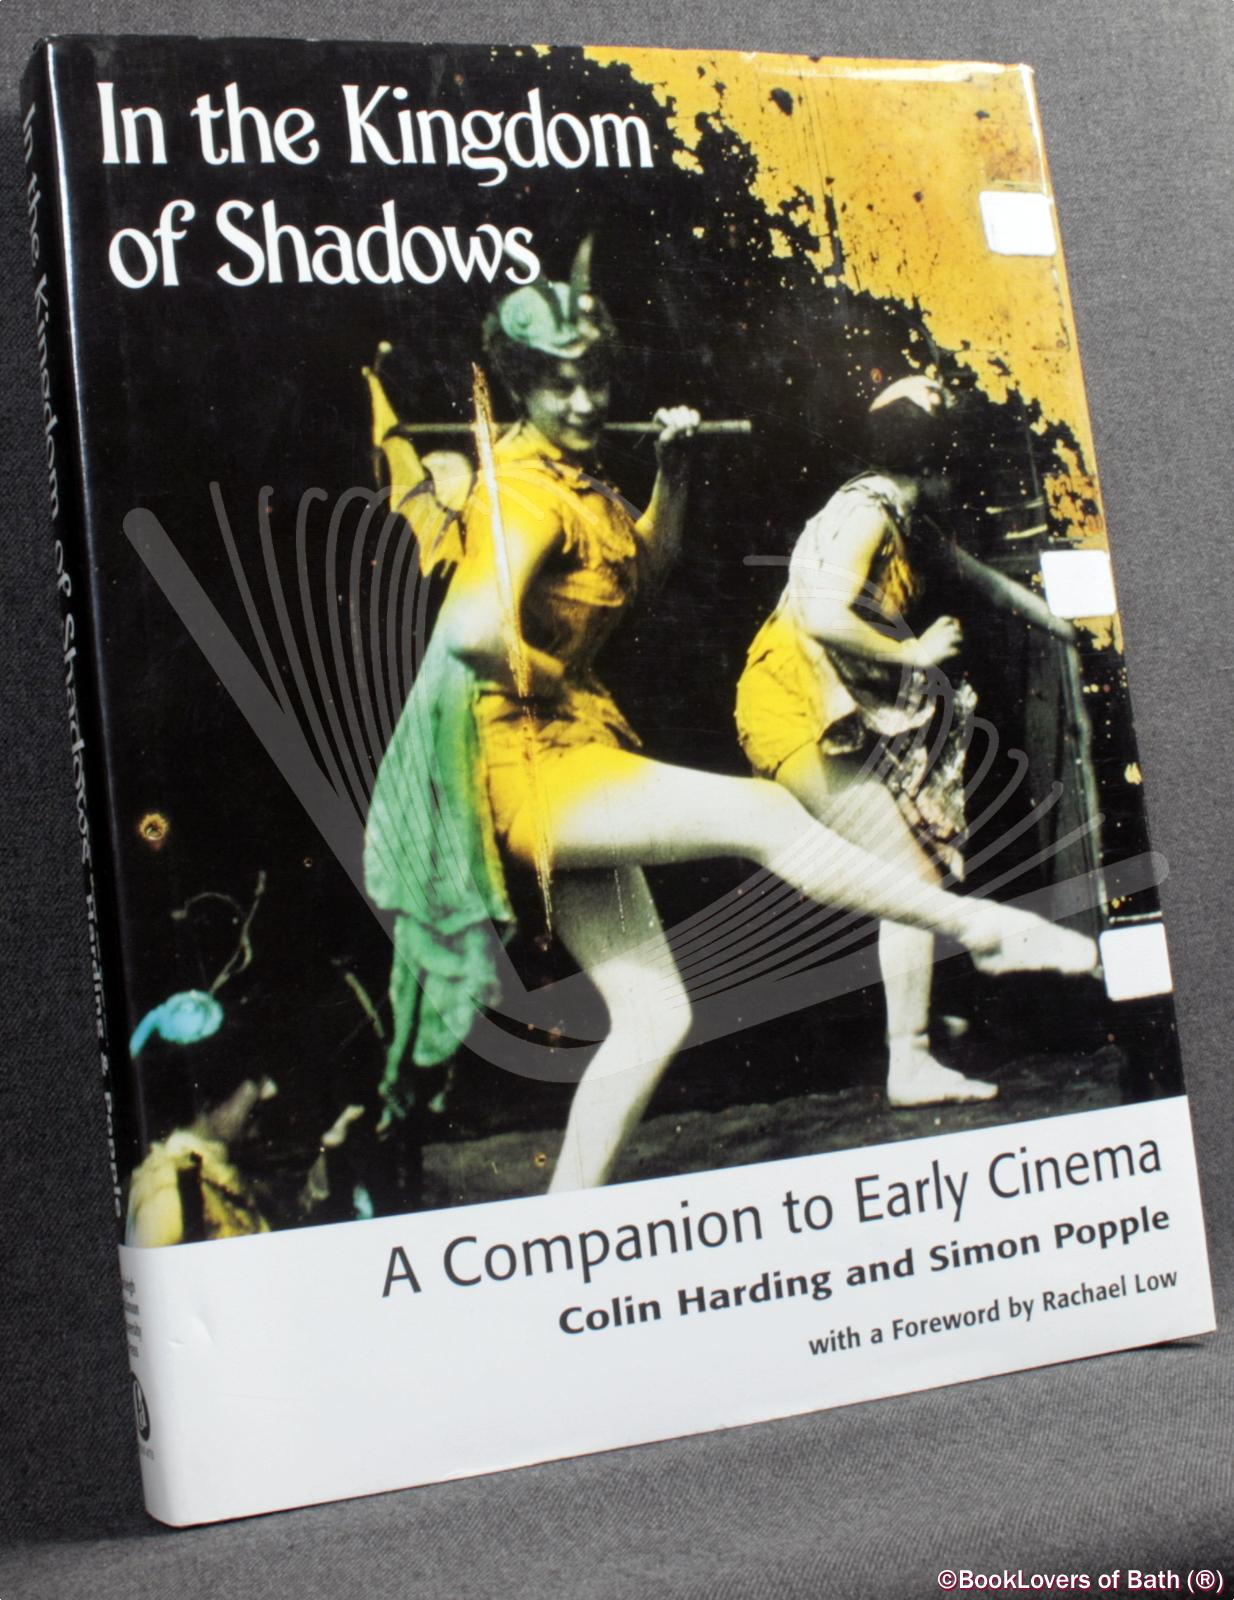 In the Kingdom of Shadows: A Companion to Early Cinema - Colin Harding & Simon Popple